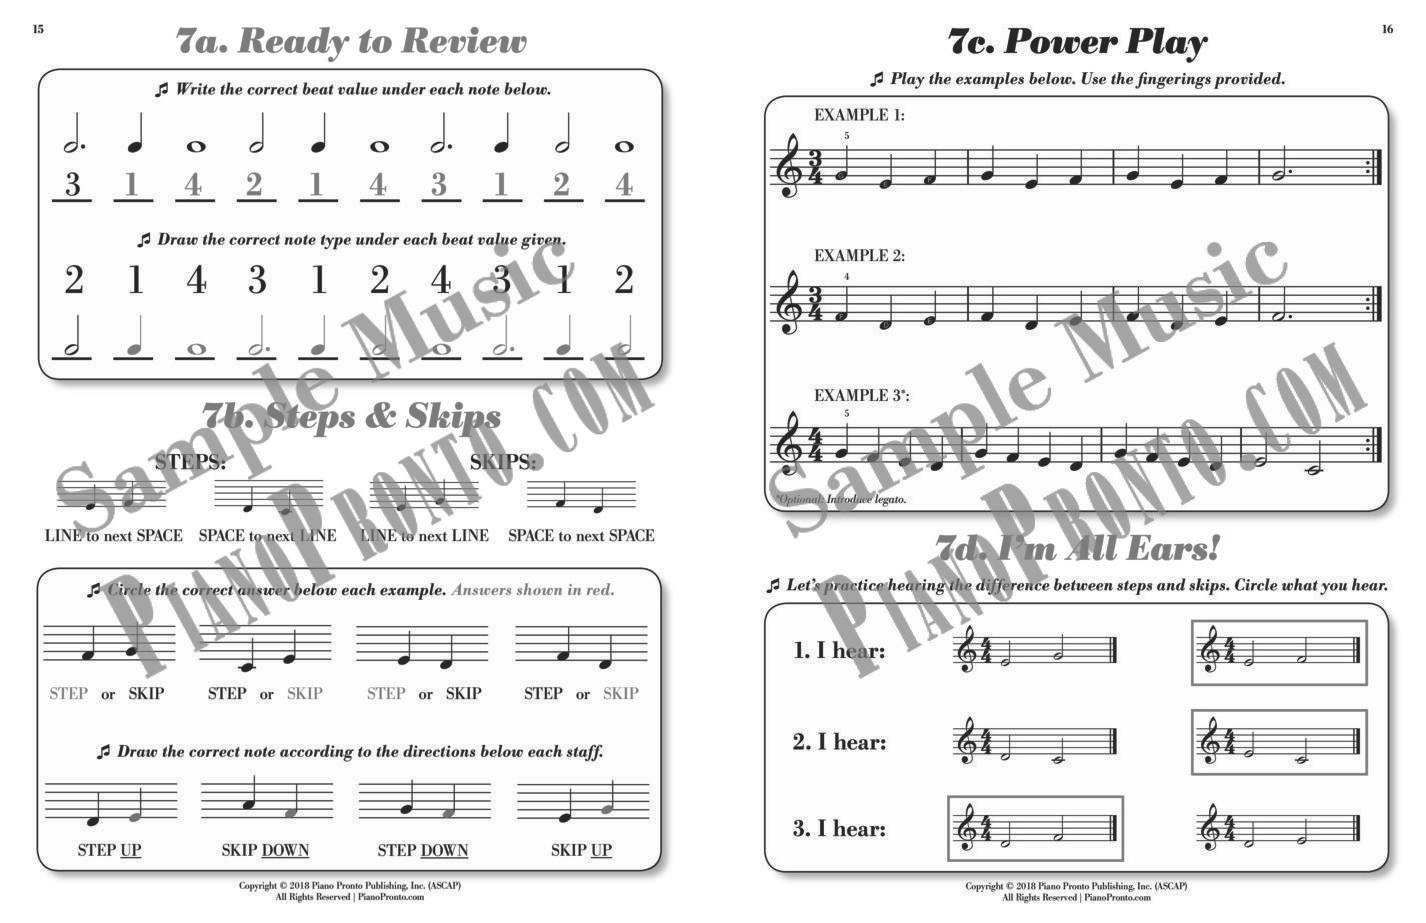 Keyboard Kickoff: Power Pages™ Answer Guide | Workbook | Piano ...